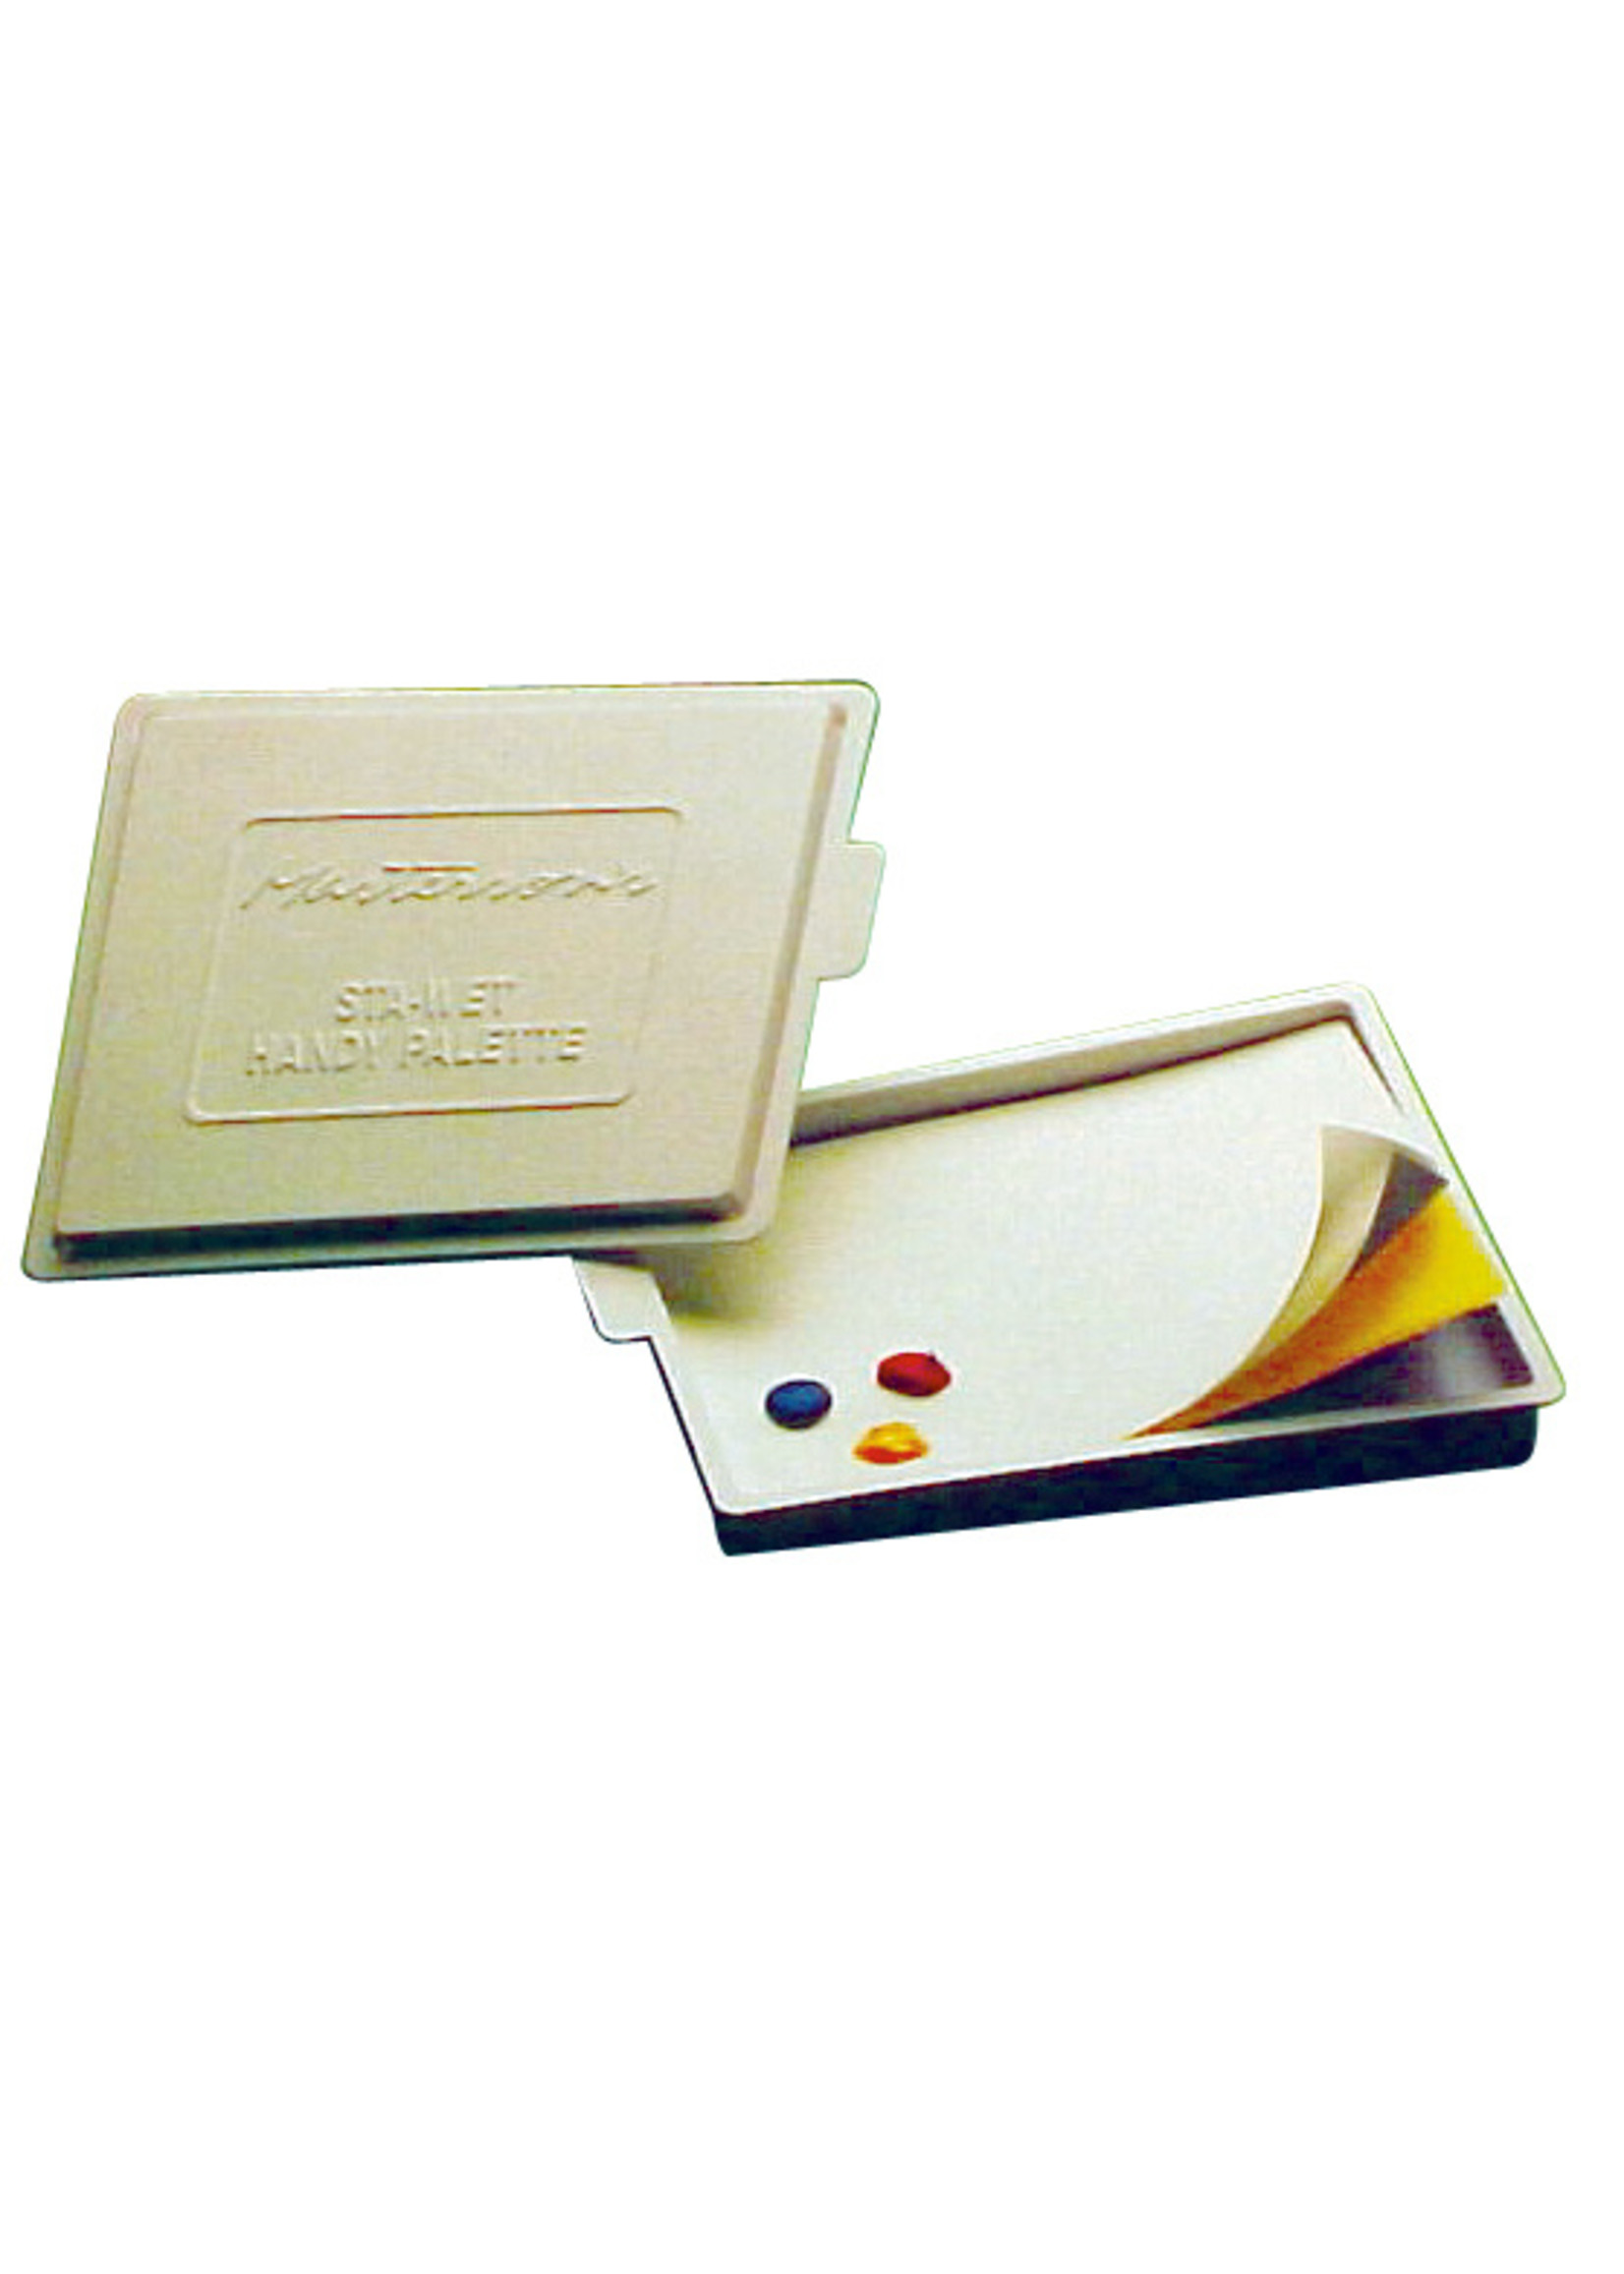 STA-WET HANDY PALETTE WITH LID 8-1/2X7